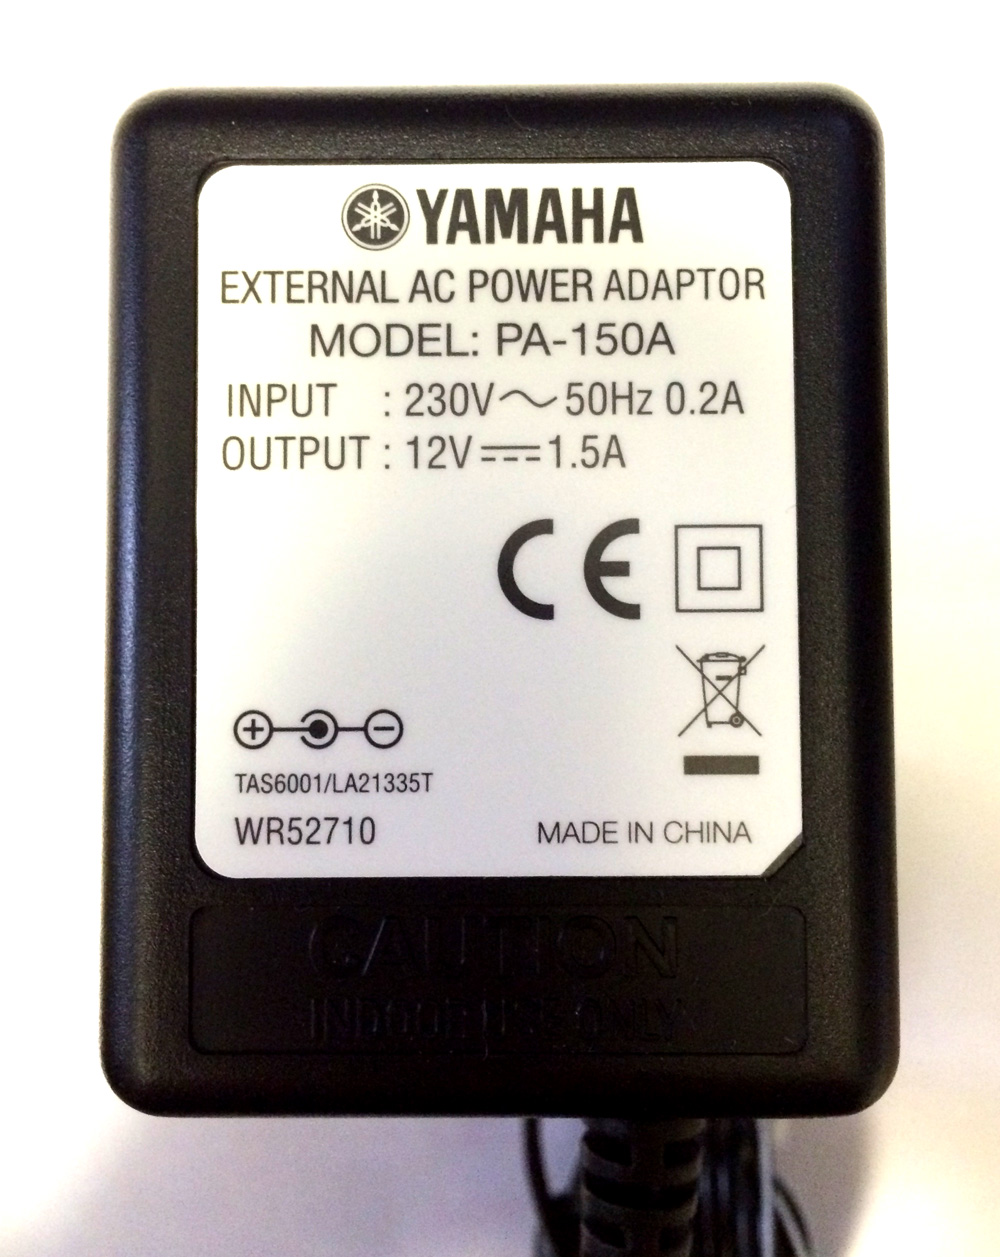 Yamaha pa 150a mains power adapter this model replaces epa for Yamaha pa150 keyboard ac power adapter